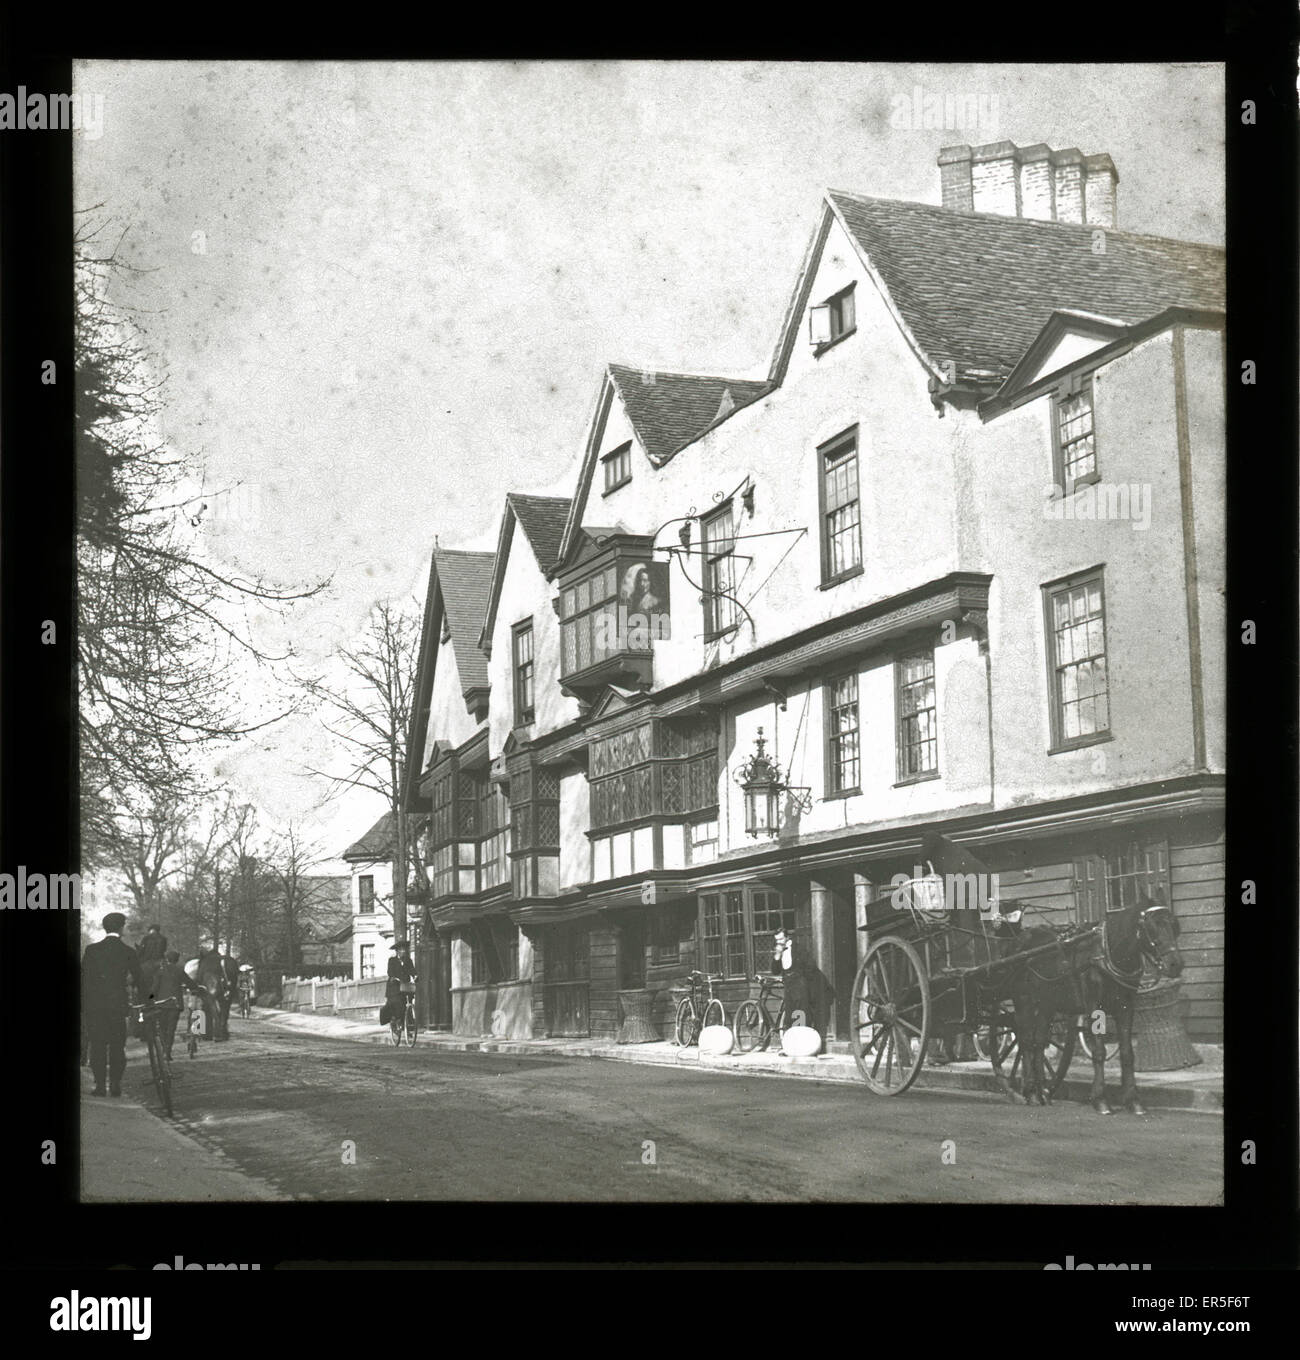 The King's Head Public House, Chigwell, near Grange Hill, Essex, England. Showing Horse & Cart  1900s - Stock Image